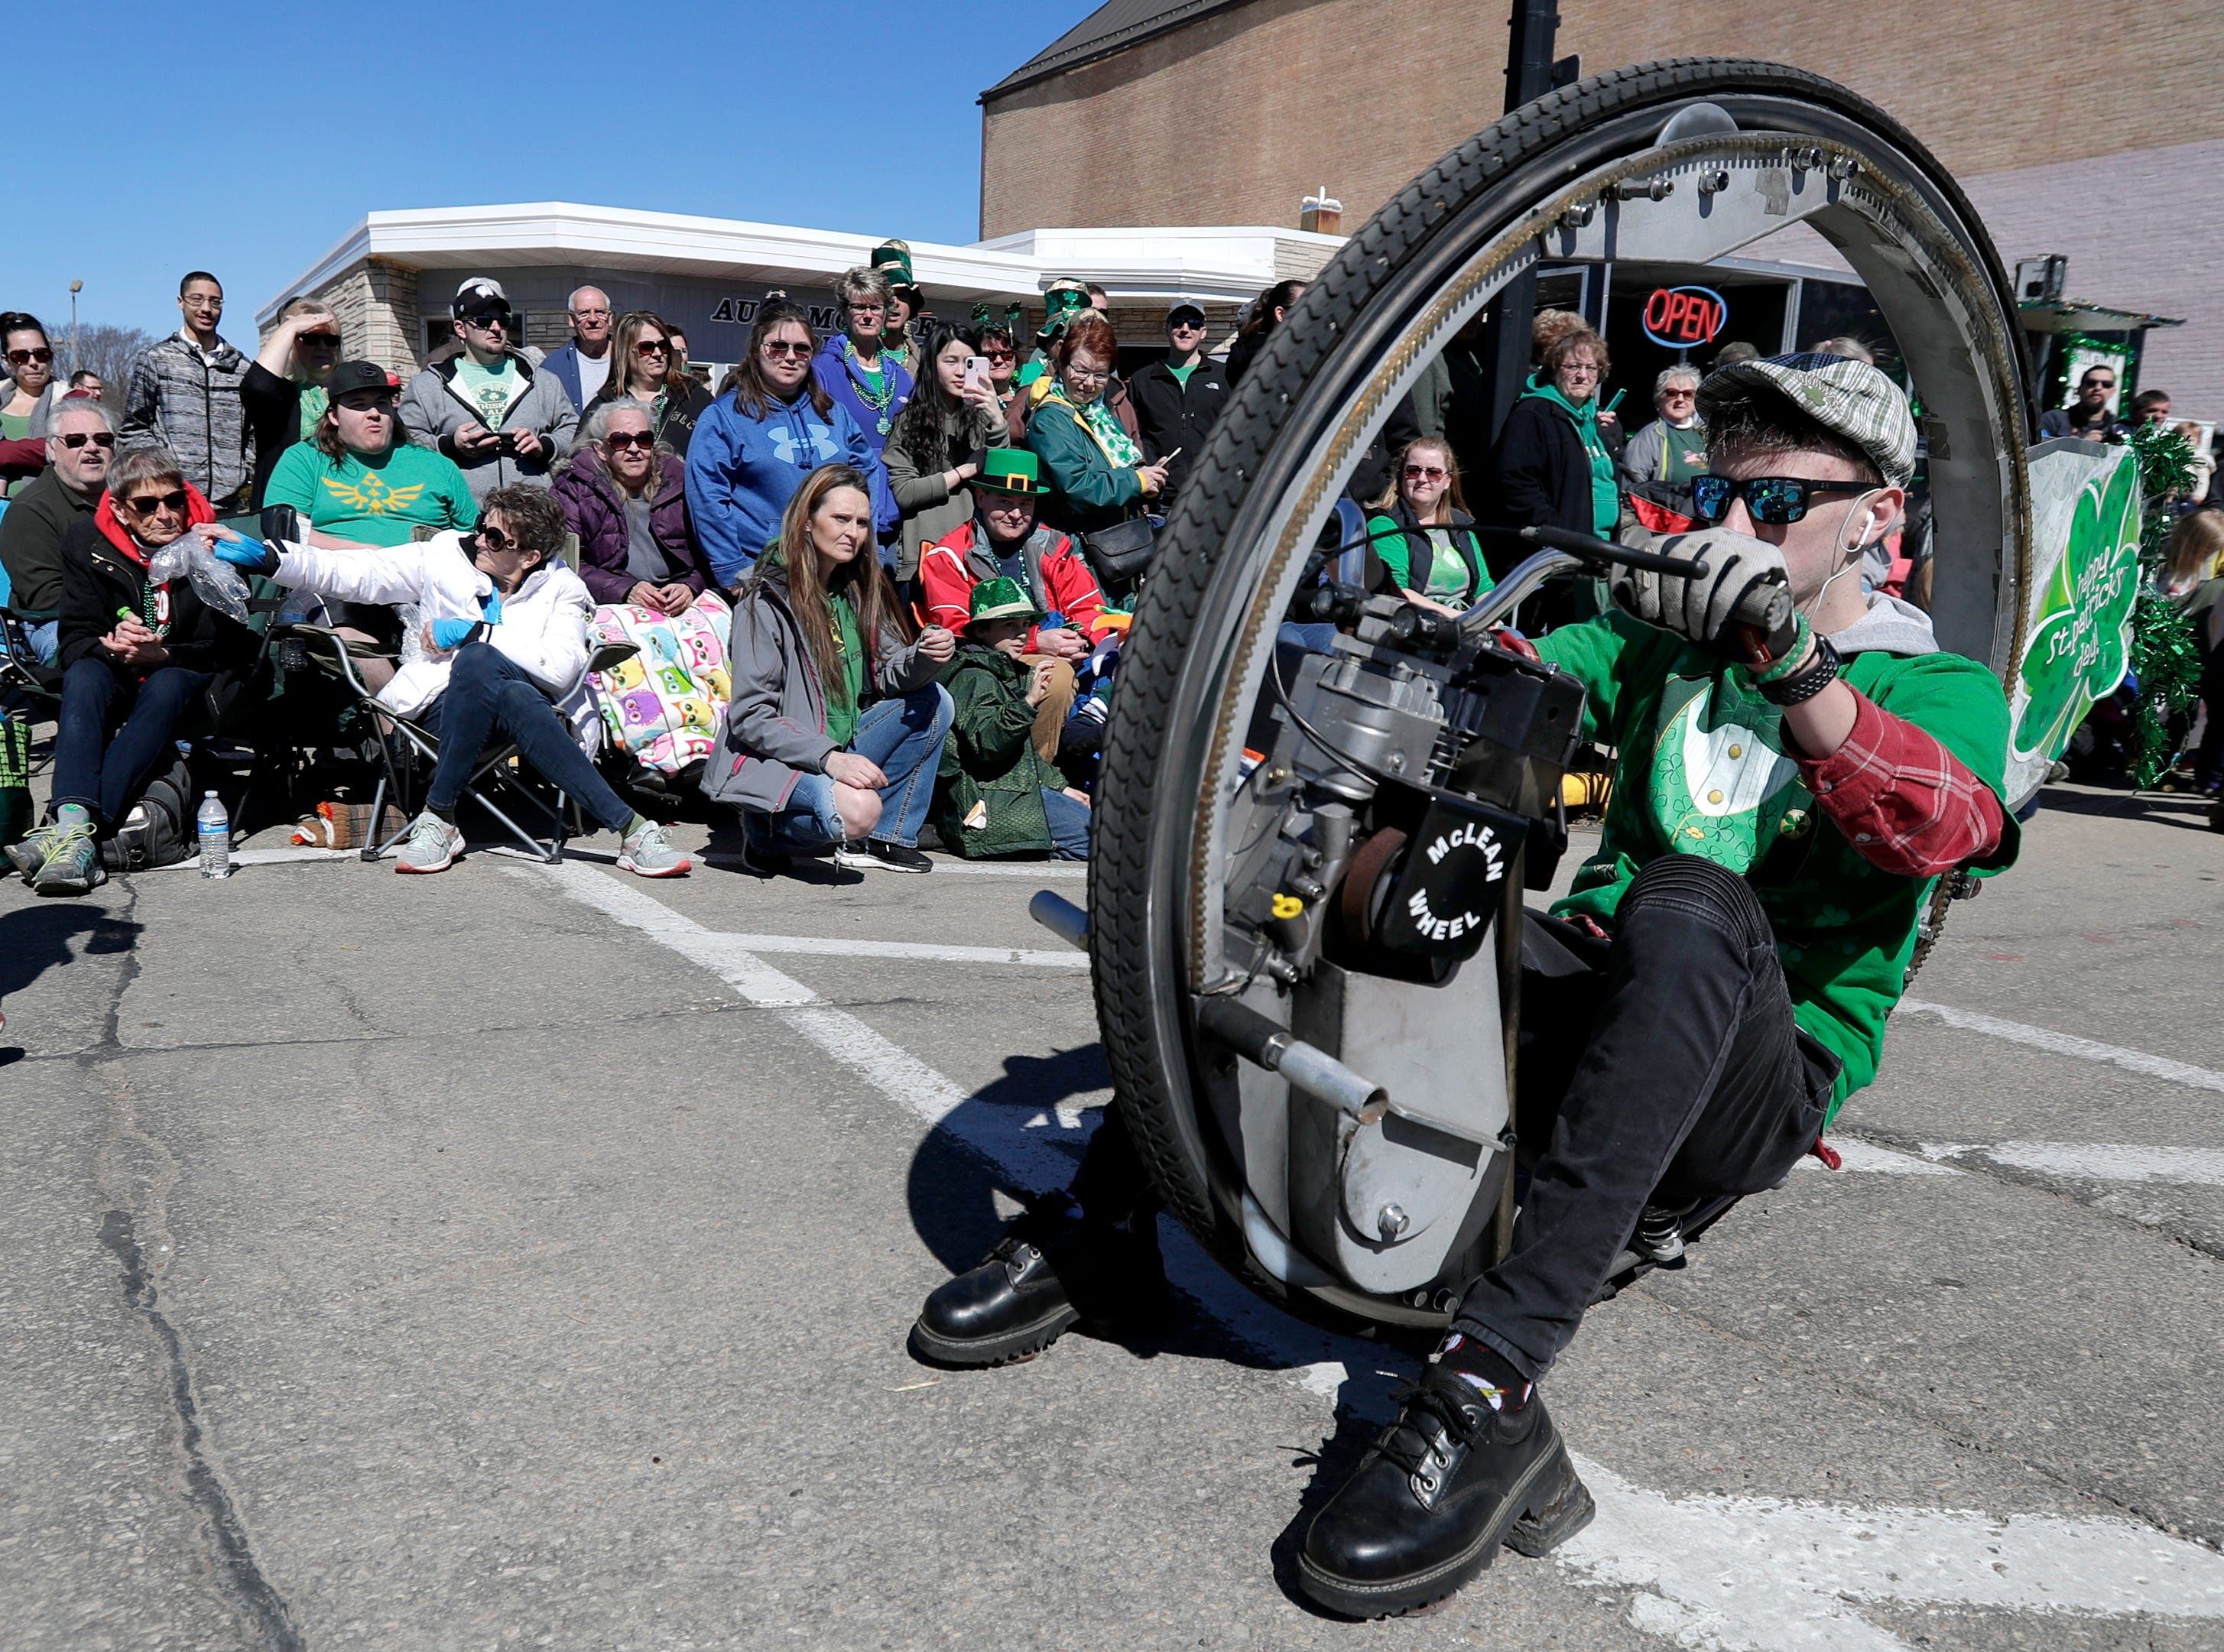 Carson Howell dueing the New Dublin St. Patrick's Day Grand Parade on Saturday, March 23, 2019, in New London, Wis.Wm. Glasheen/USA TODAY NETWORK-Wisconsin.